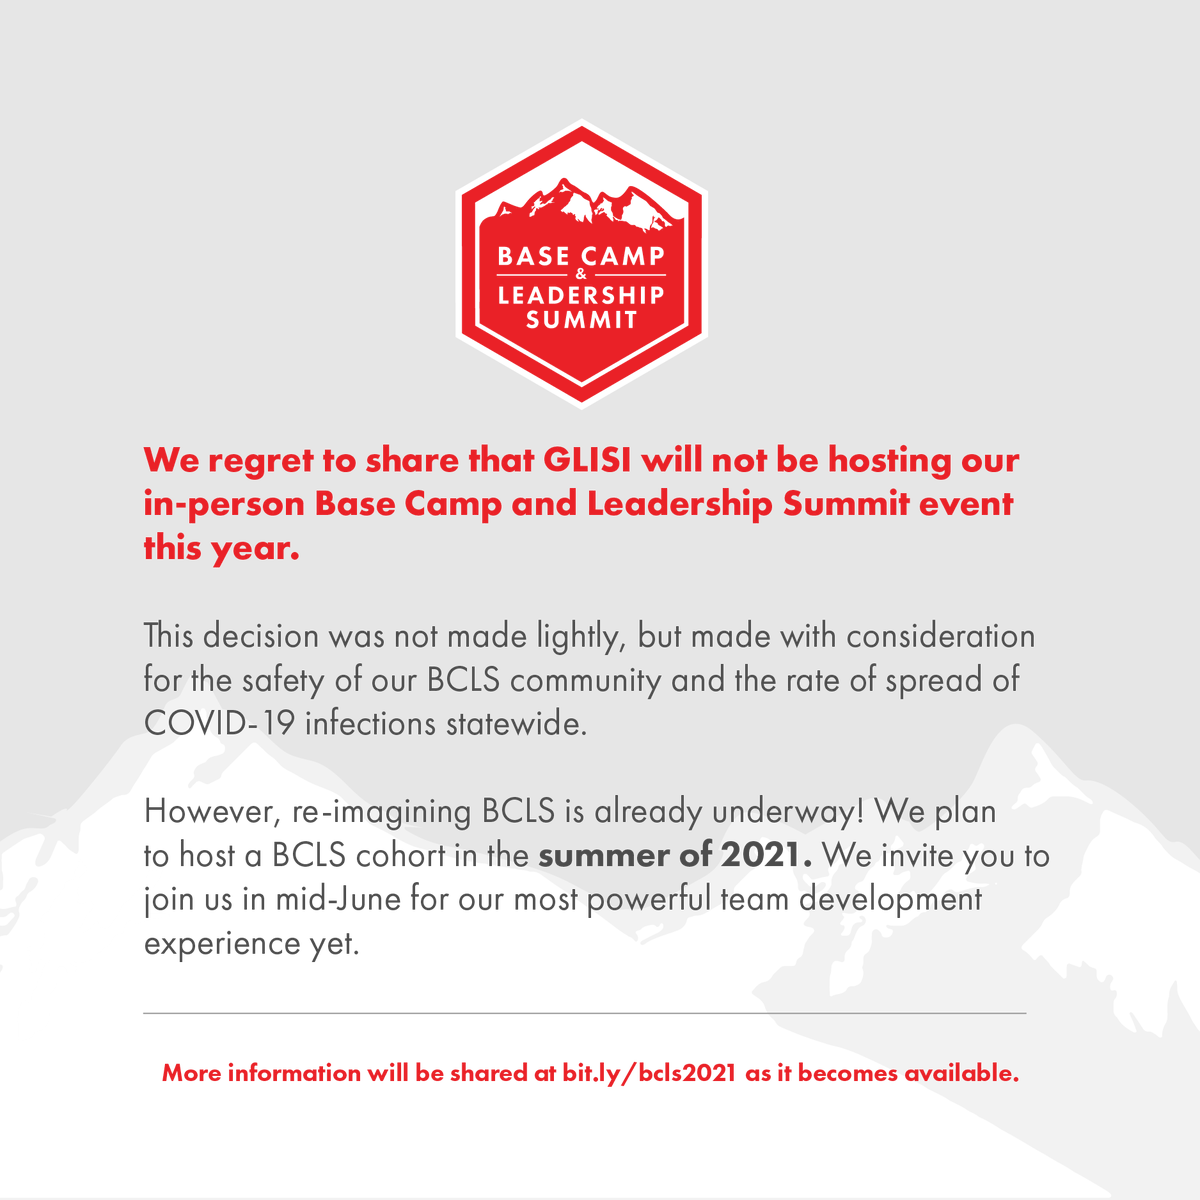 Important Announcement Regarding the 2020-2021 Base Camp and Leadership Summit season: